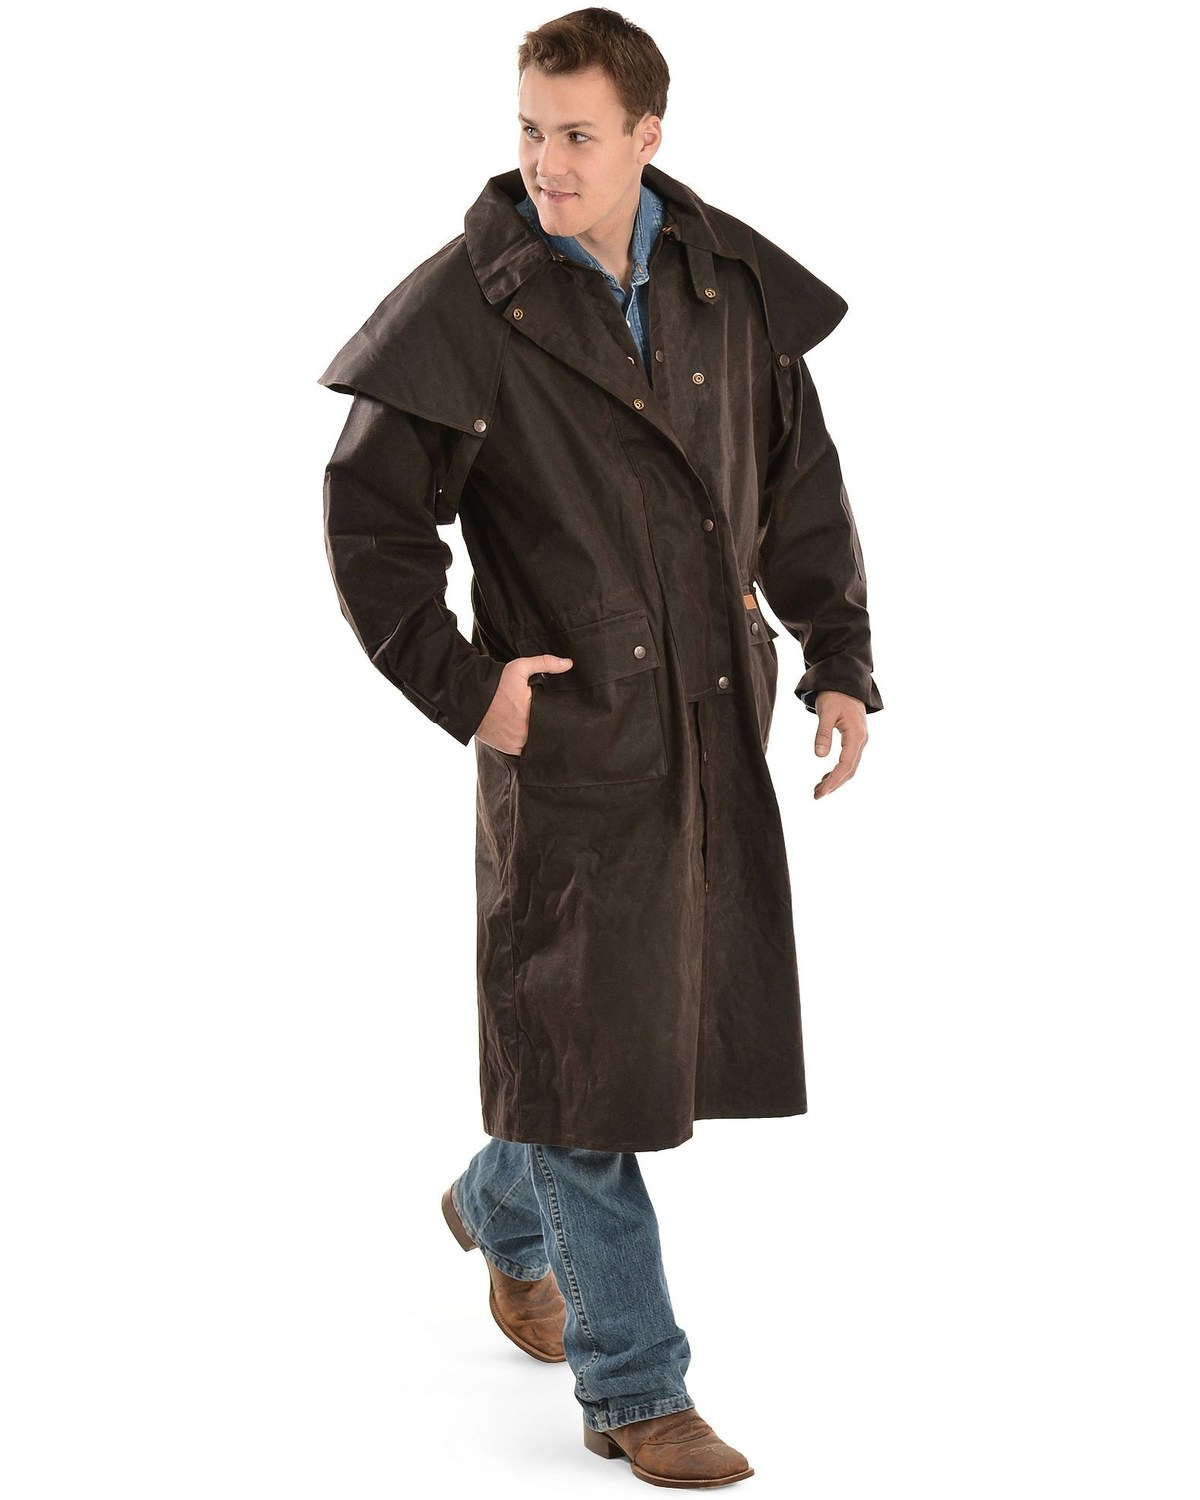 Outback Trading Waterproof Oilskin Low Rider Duster 080409